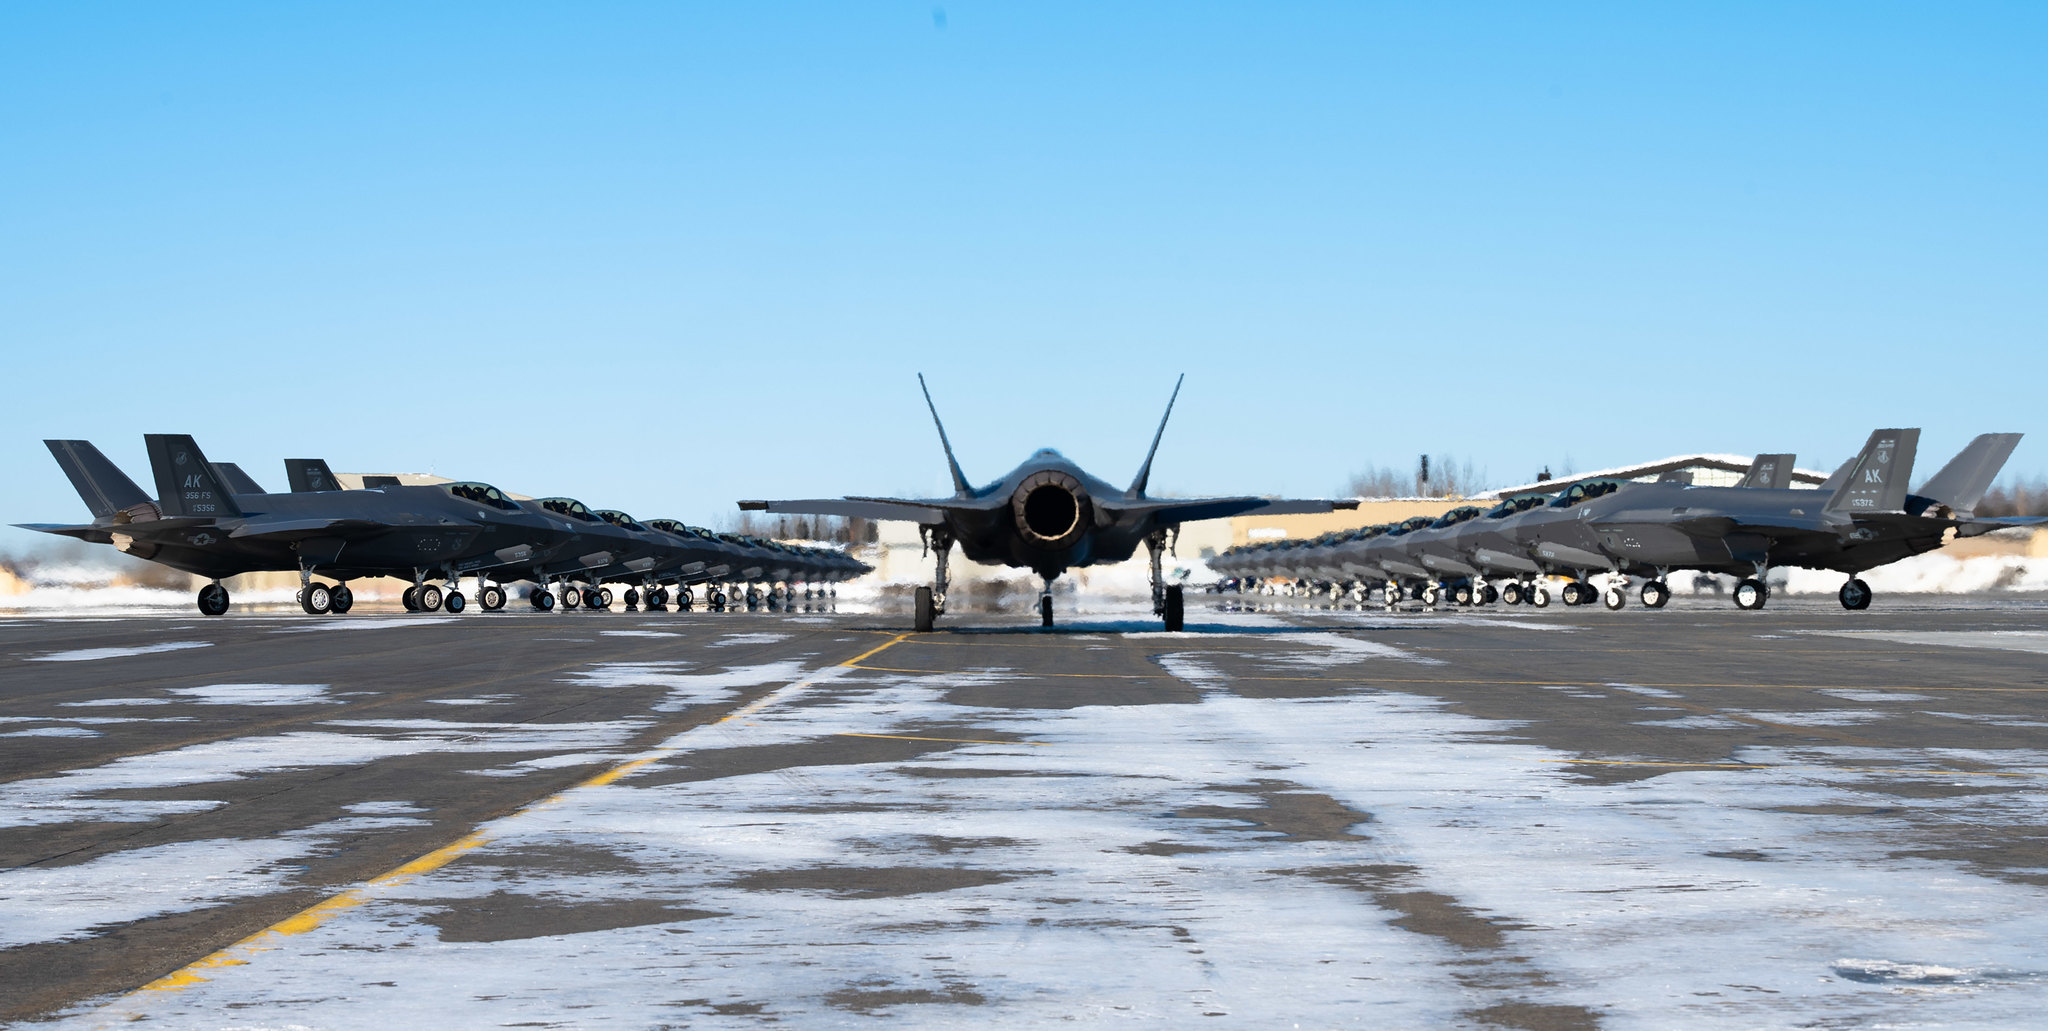 Twenty-five F-35A Lightning IIs assigned to the 354th Fighter Wing assemble on the flightline prior to taking off during Arctic Gold (AG) 21-2 at Eielson Air Force Base, Alaska, April 7, 2021. (Airman 1st Class Jose Miguel T. Tamondong/Air Force)